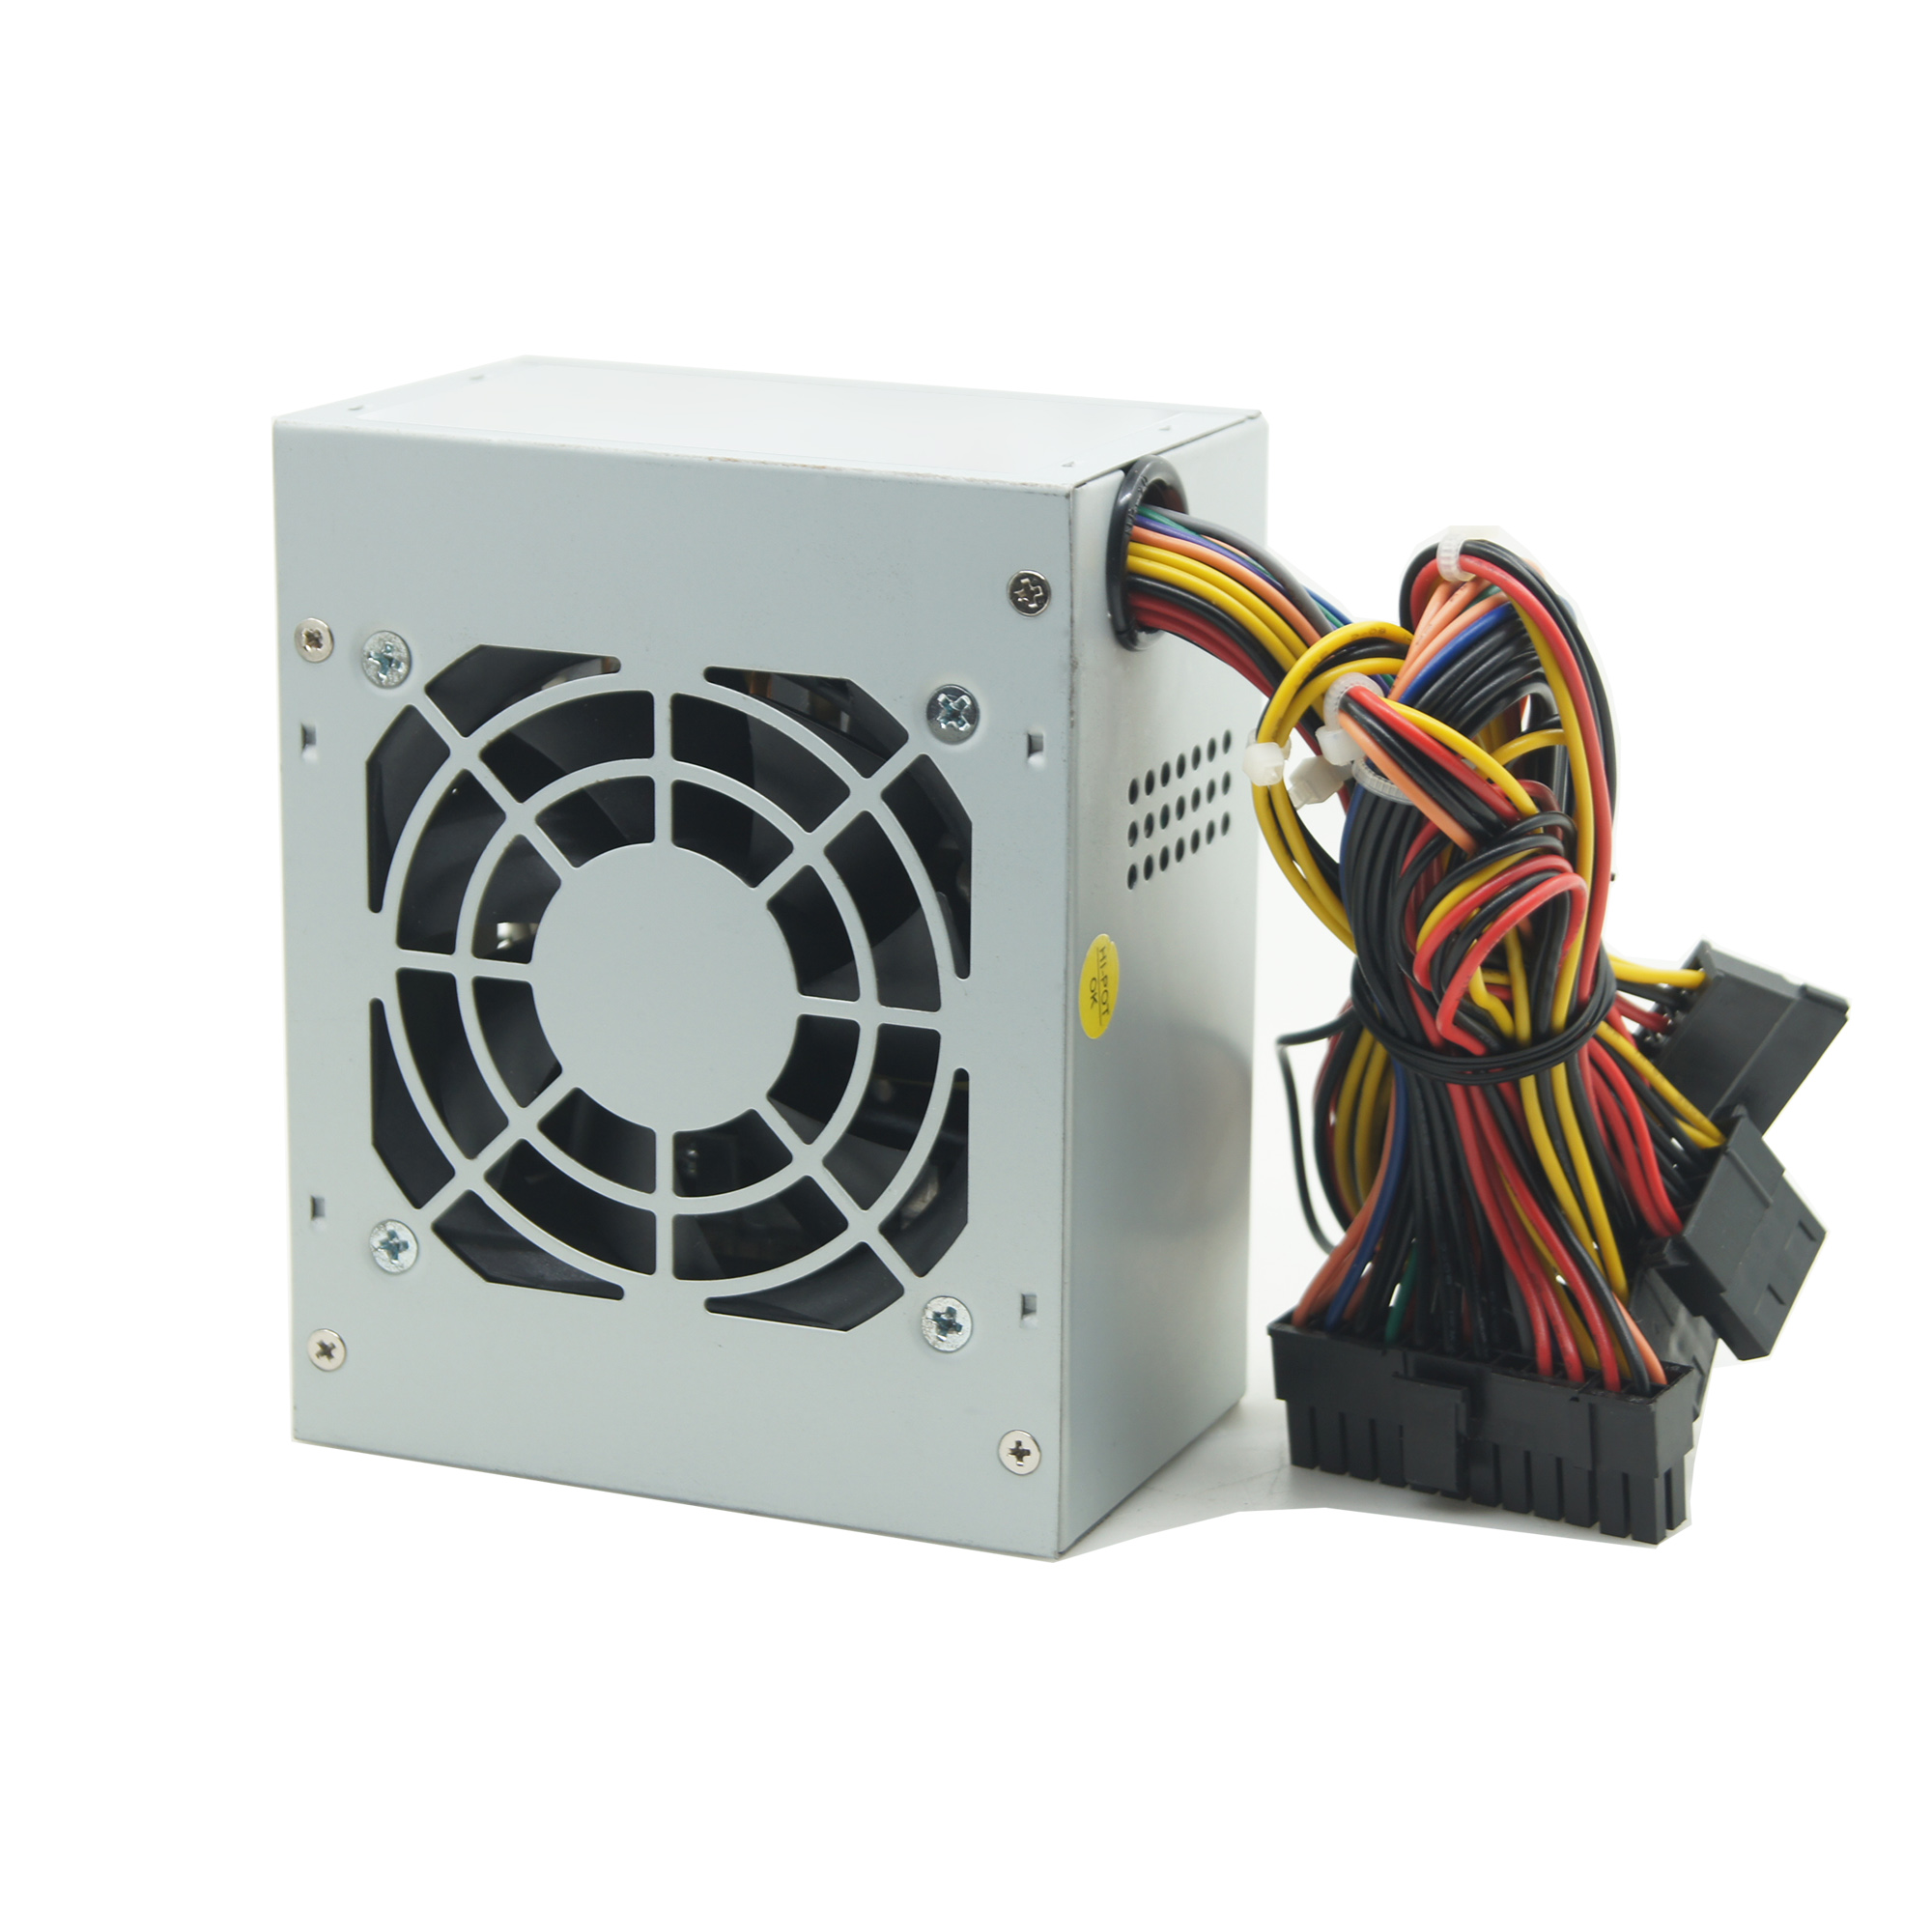 SFX 180w micro atx power supply for micro itx